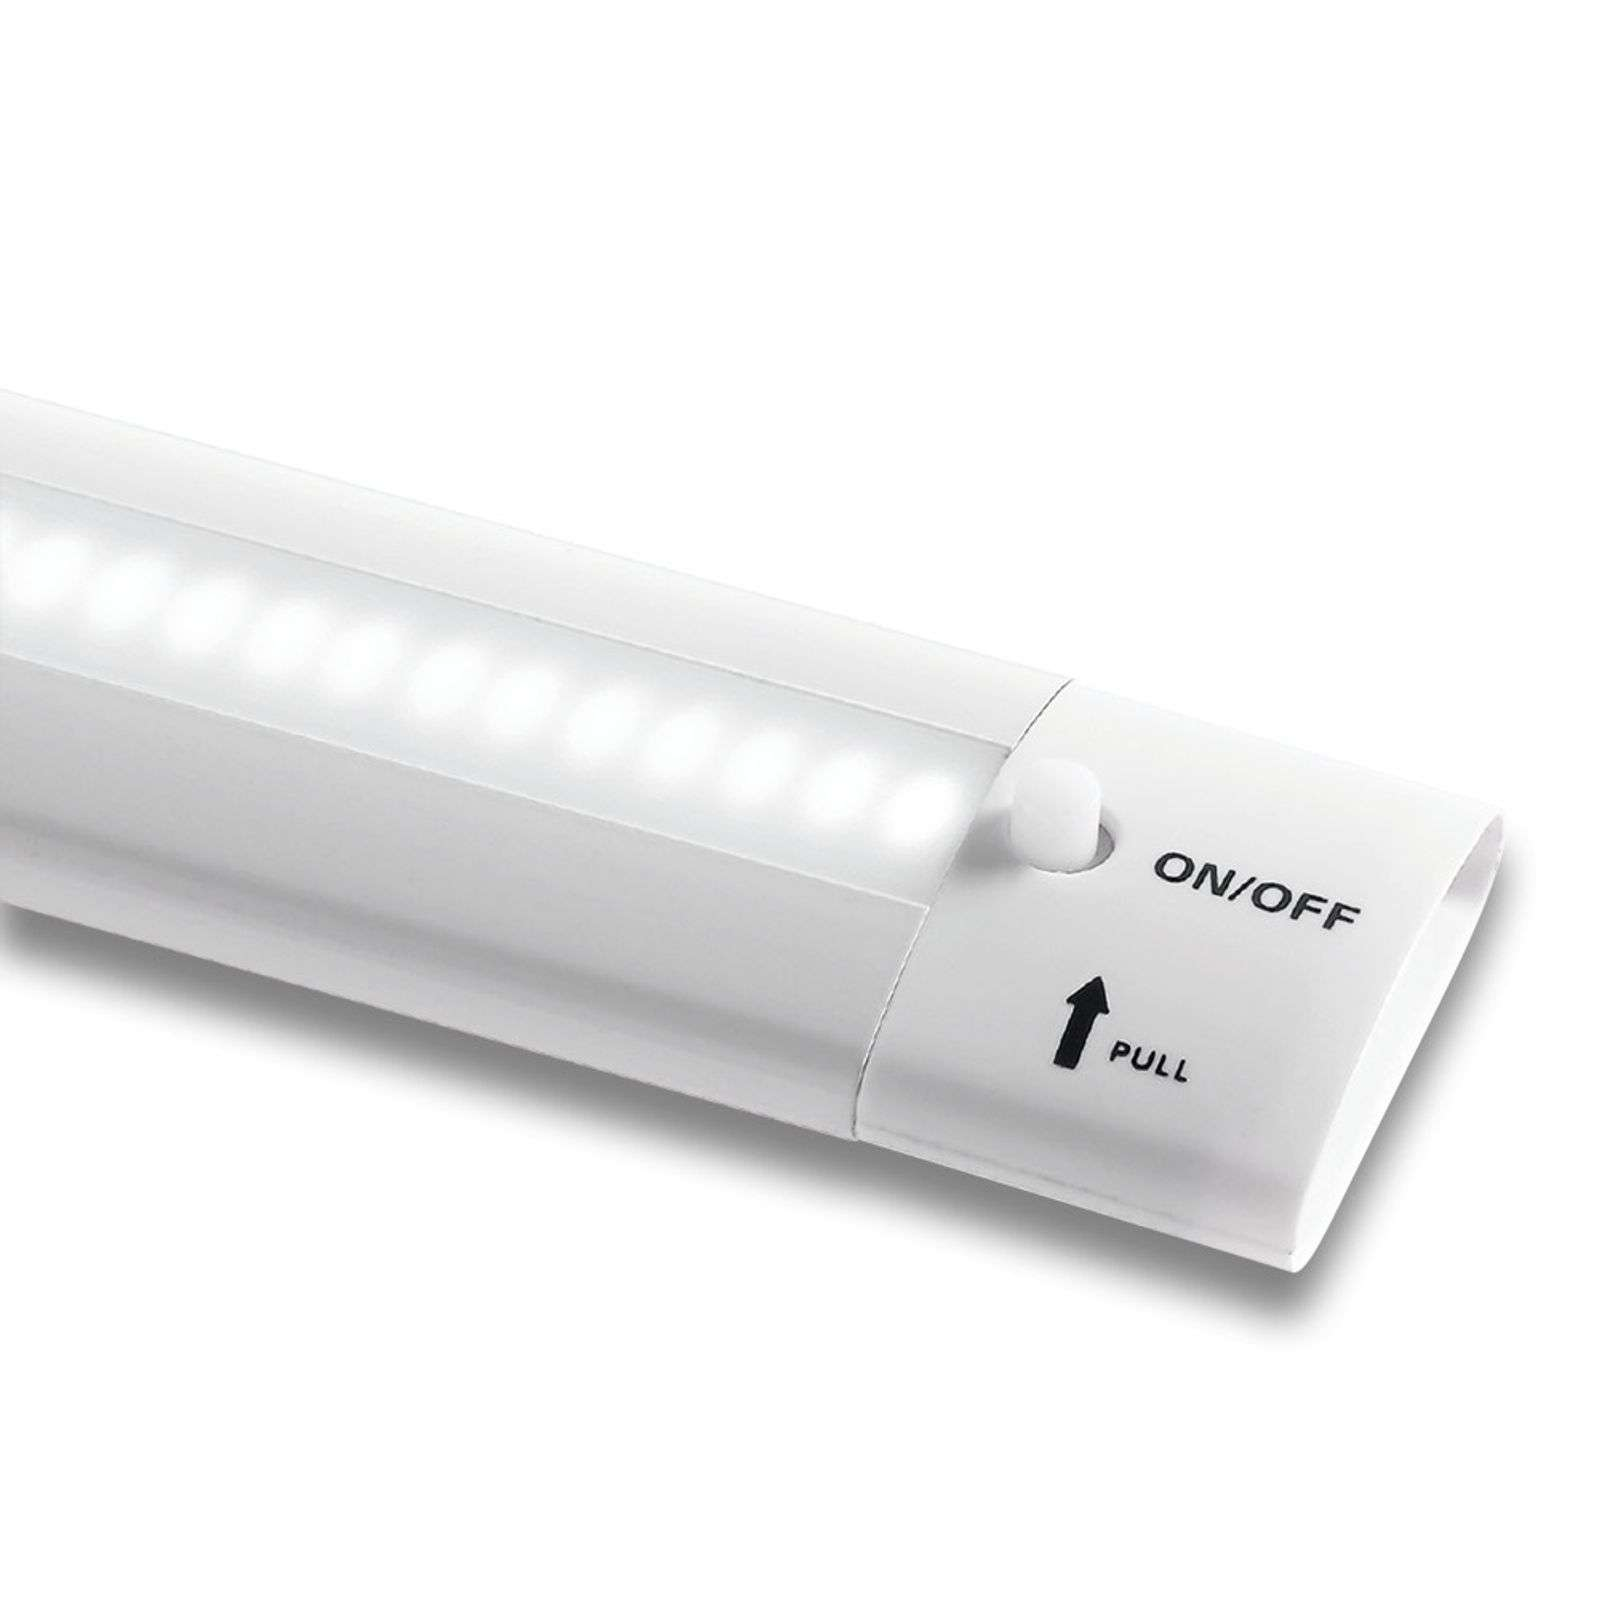 Applique sous meuble LED 5W Galway 6690, blanc